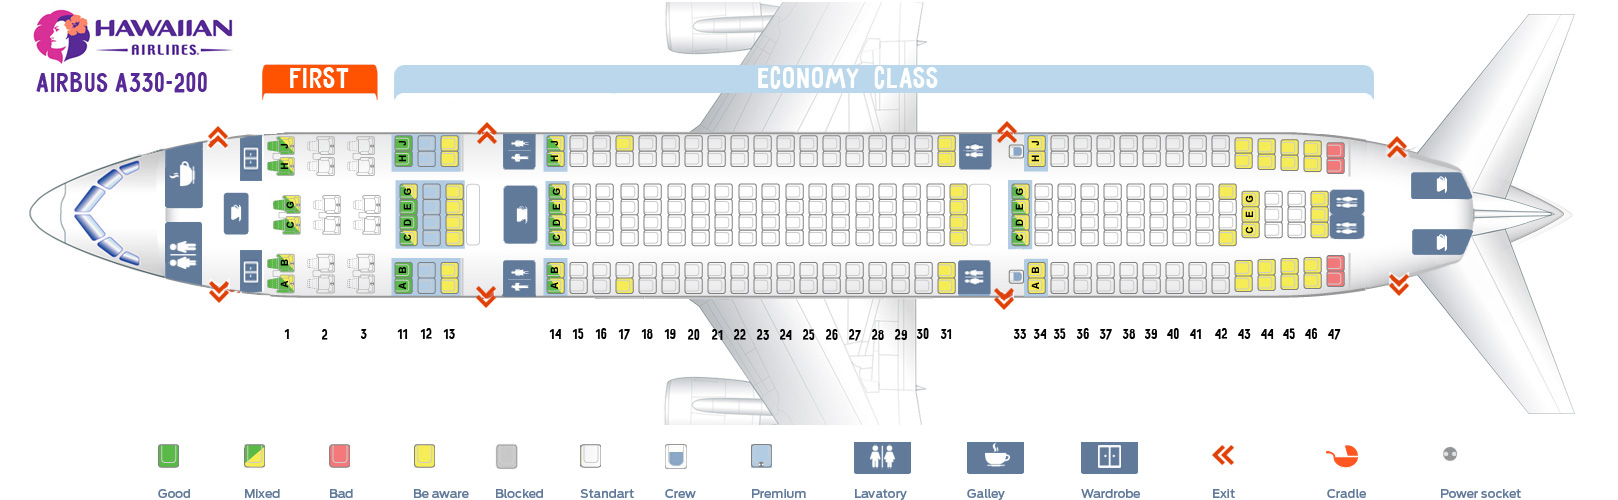 Seat map Airbus A330-200 Hawaiian airlines